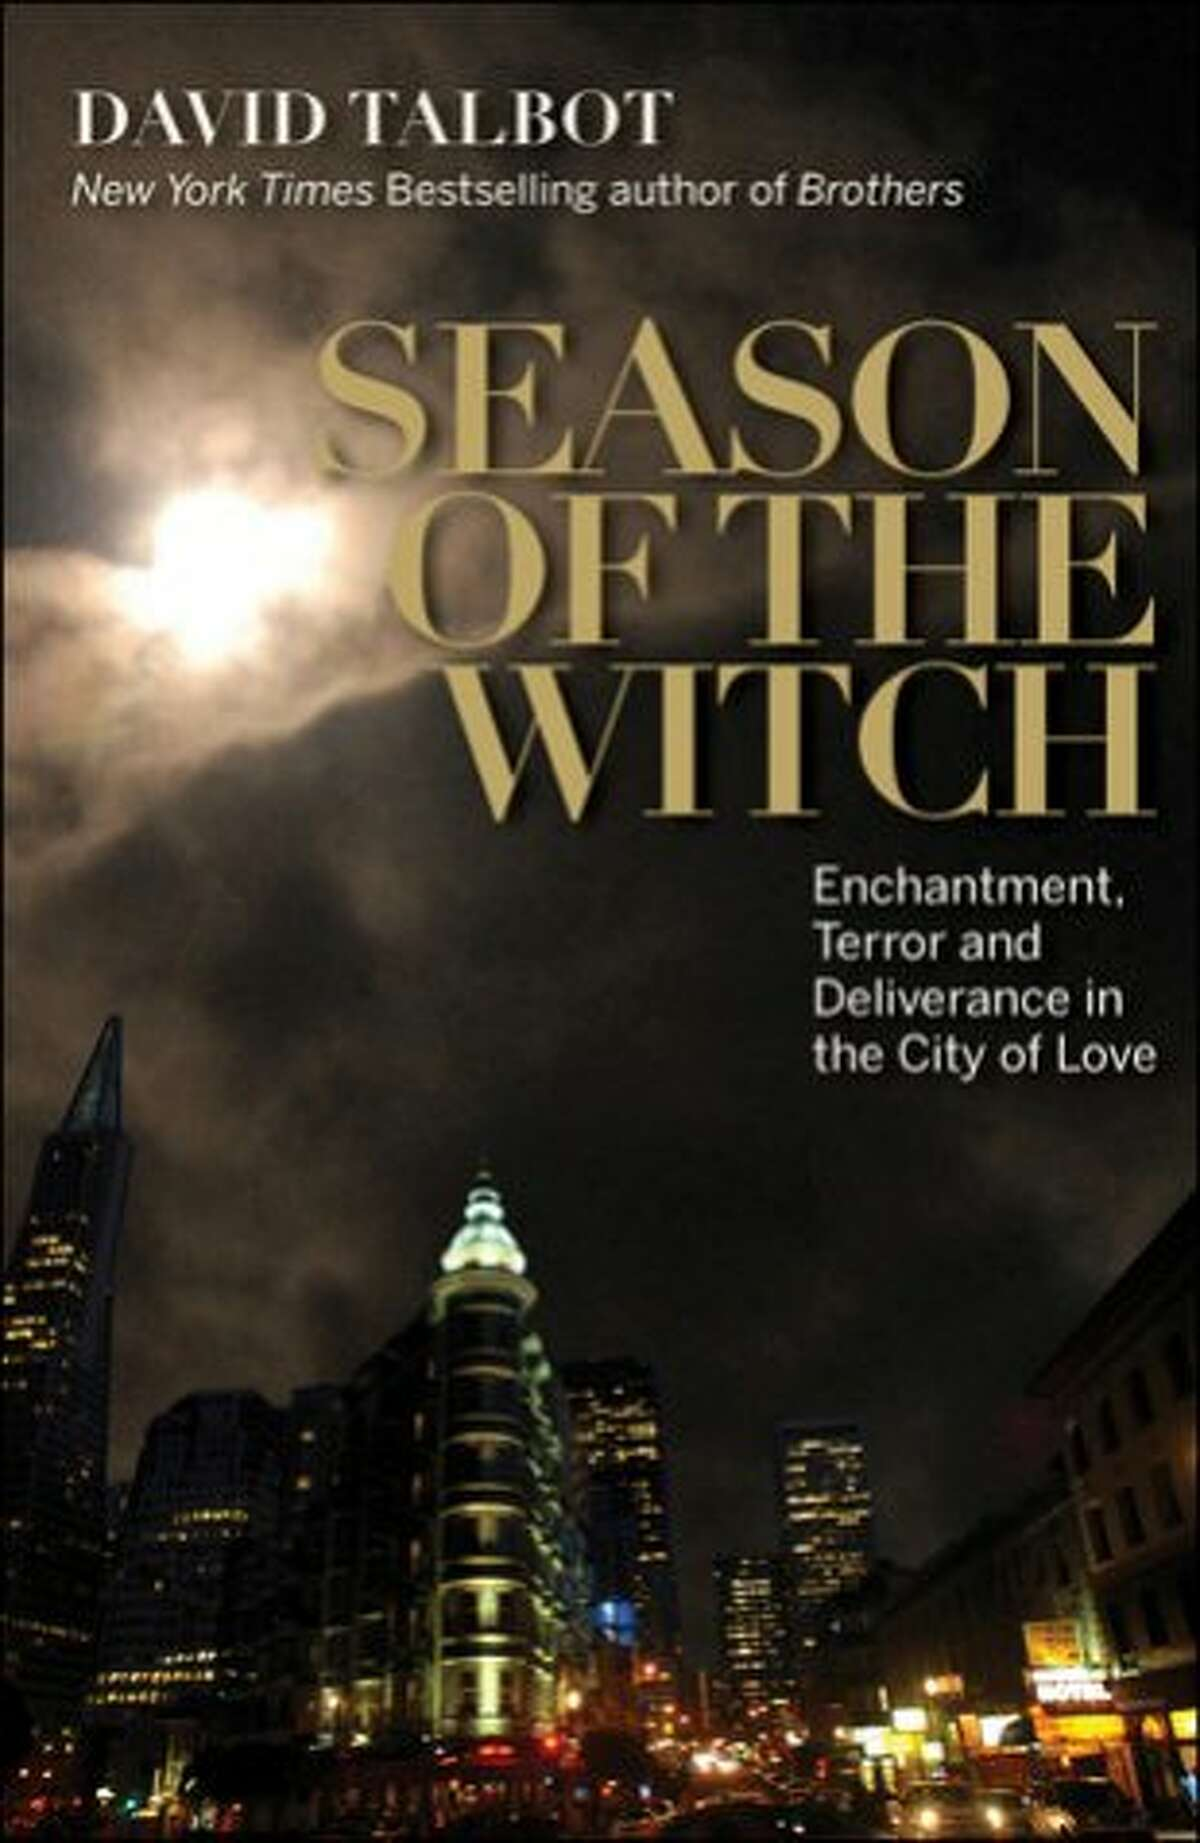 """Read """"Season of the Witch"""" by David Talbot.""""It will deepen your knowledge, understanding, and love for this little city,"""" suggests a Redditor who goes by j3nnyt4li4. """"SF has been a beacon of belonging for outsiders all across the world for several hundred years. To understand and empathize with this city, you must understand the context of the times and how SF has pushed forward as a force of its own in an often dark, repressed world."""""""